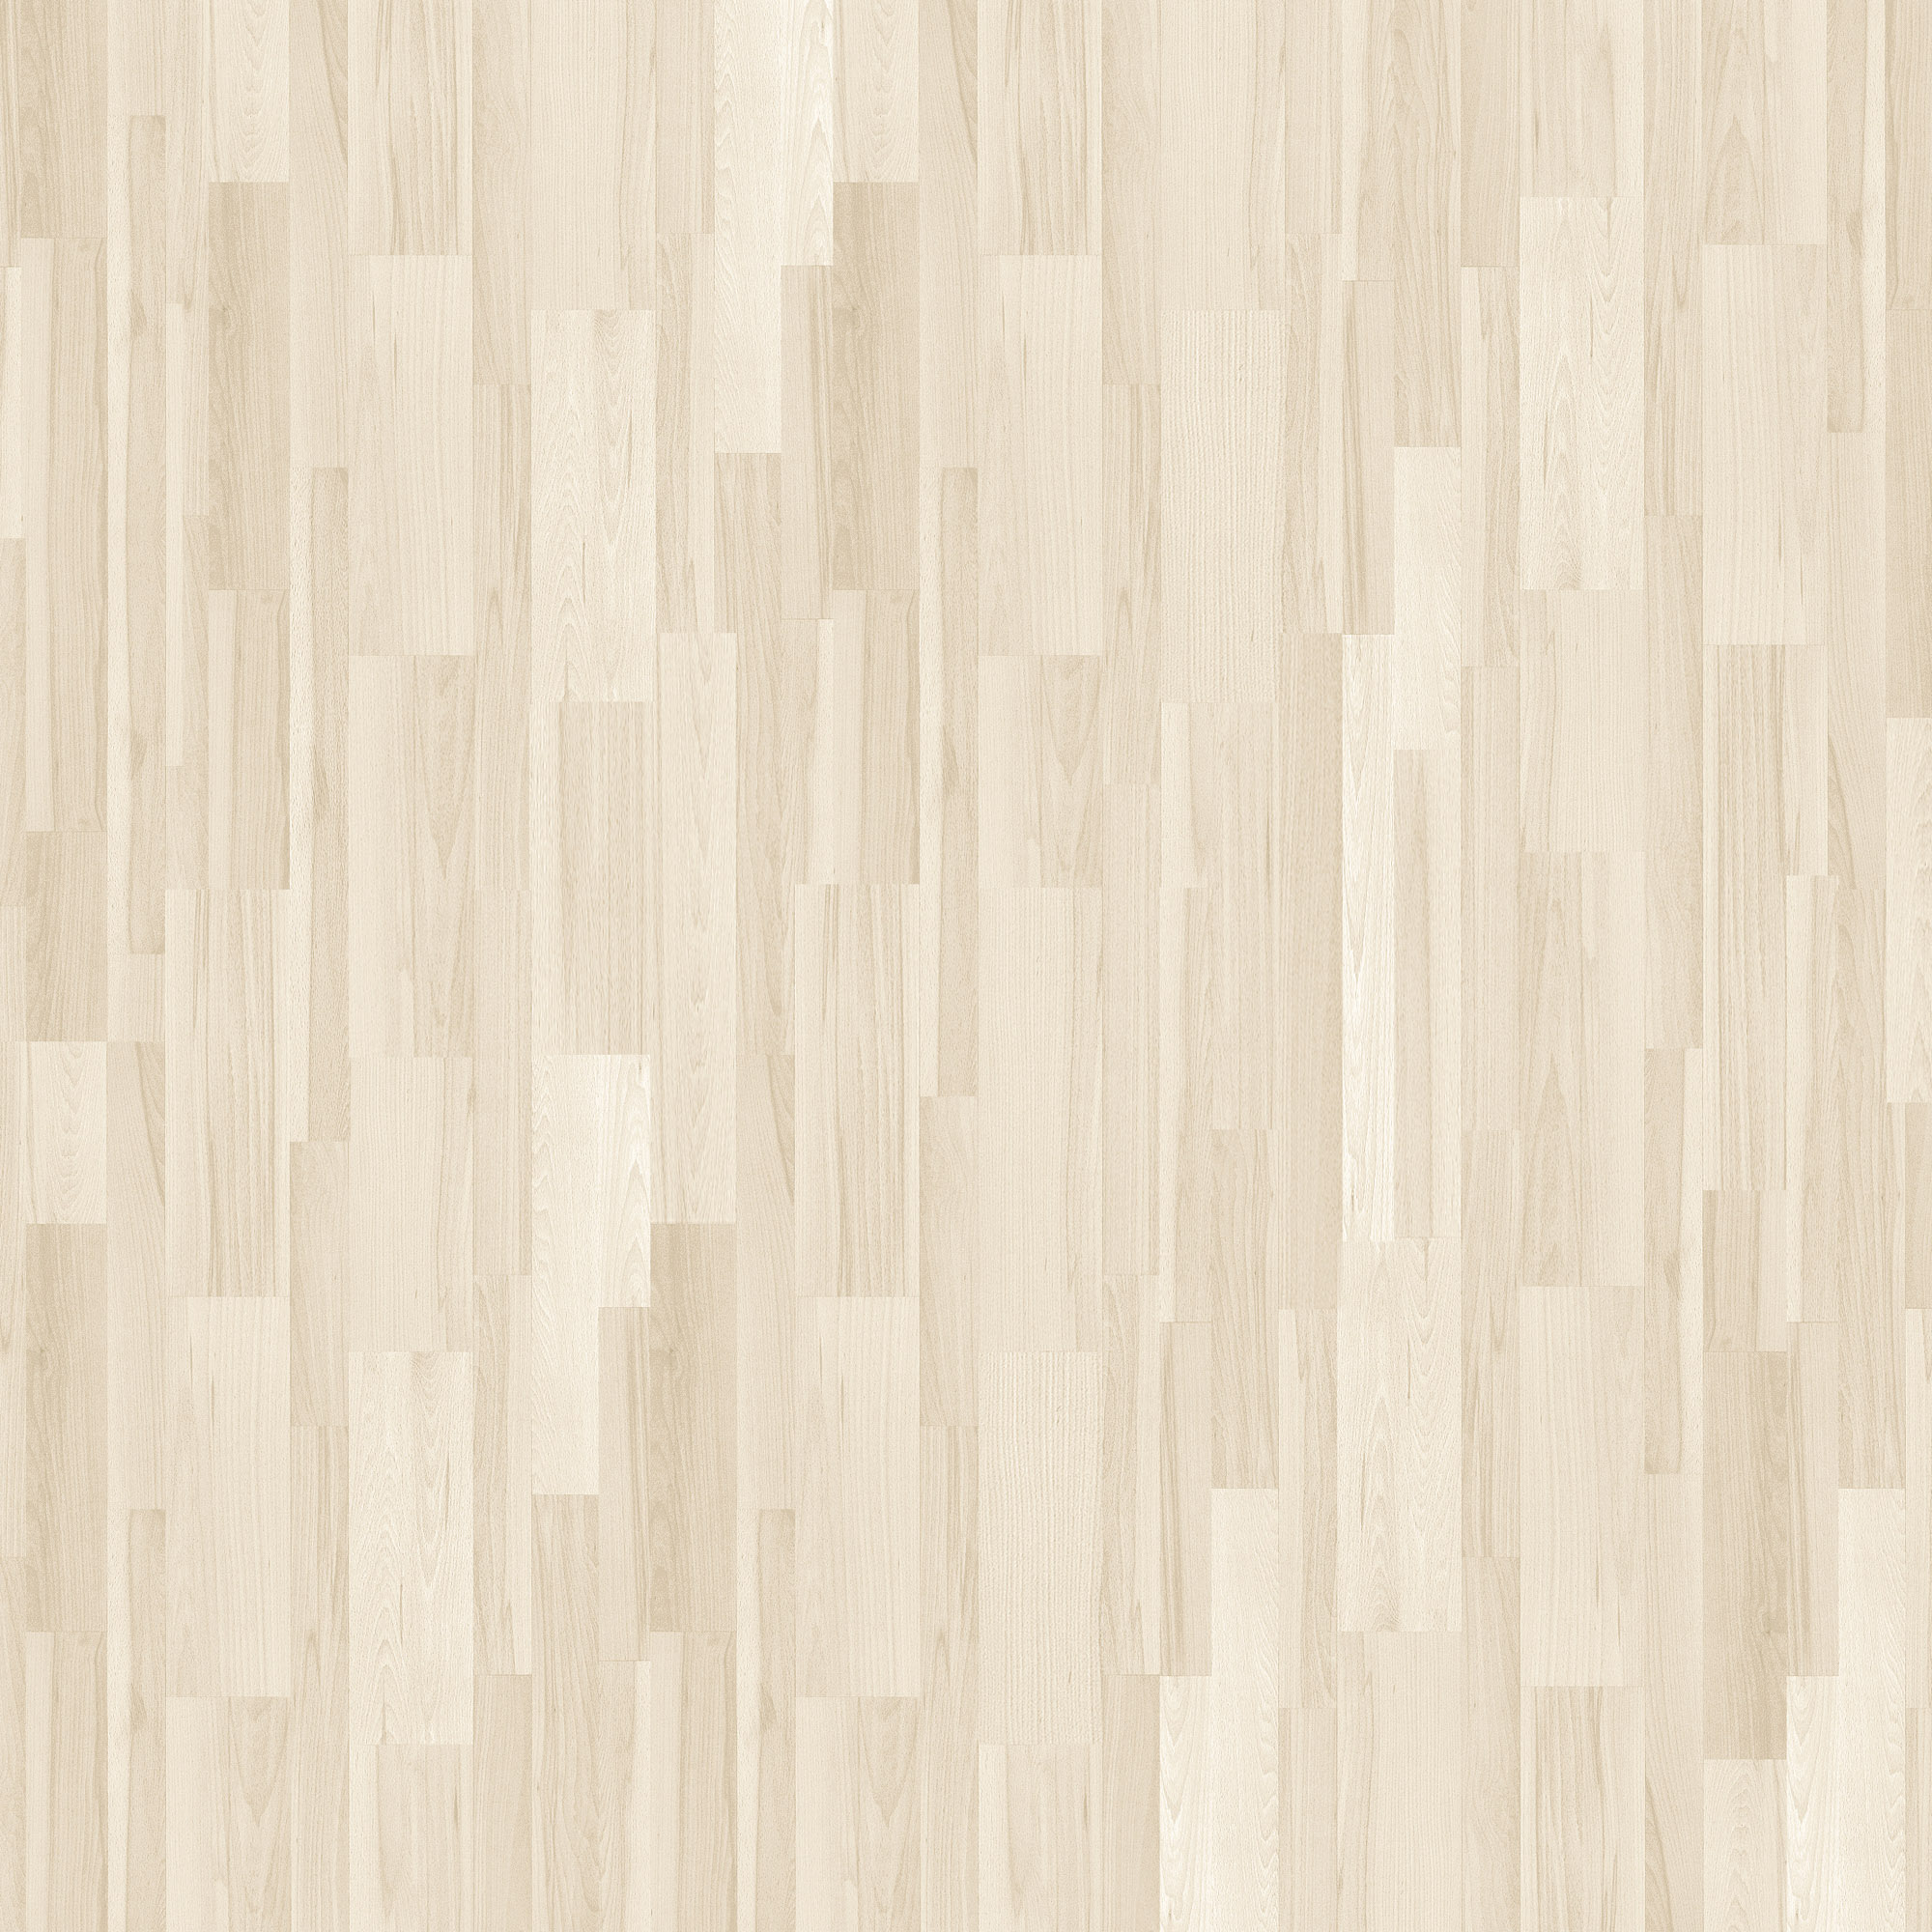 Wood planks white hardwood floor white hardwood floor jpg for Floating hardwood floor